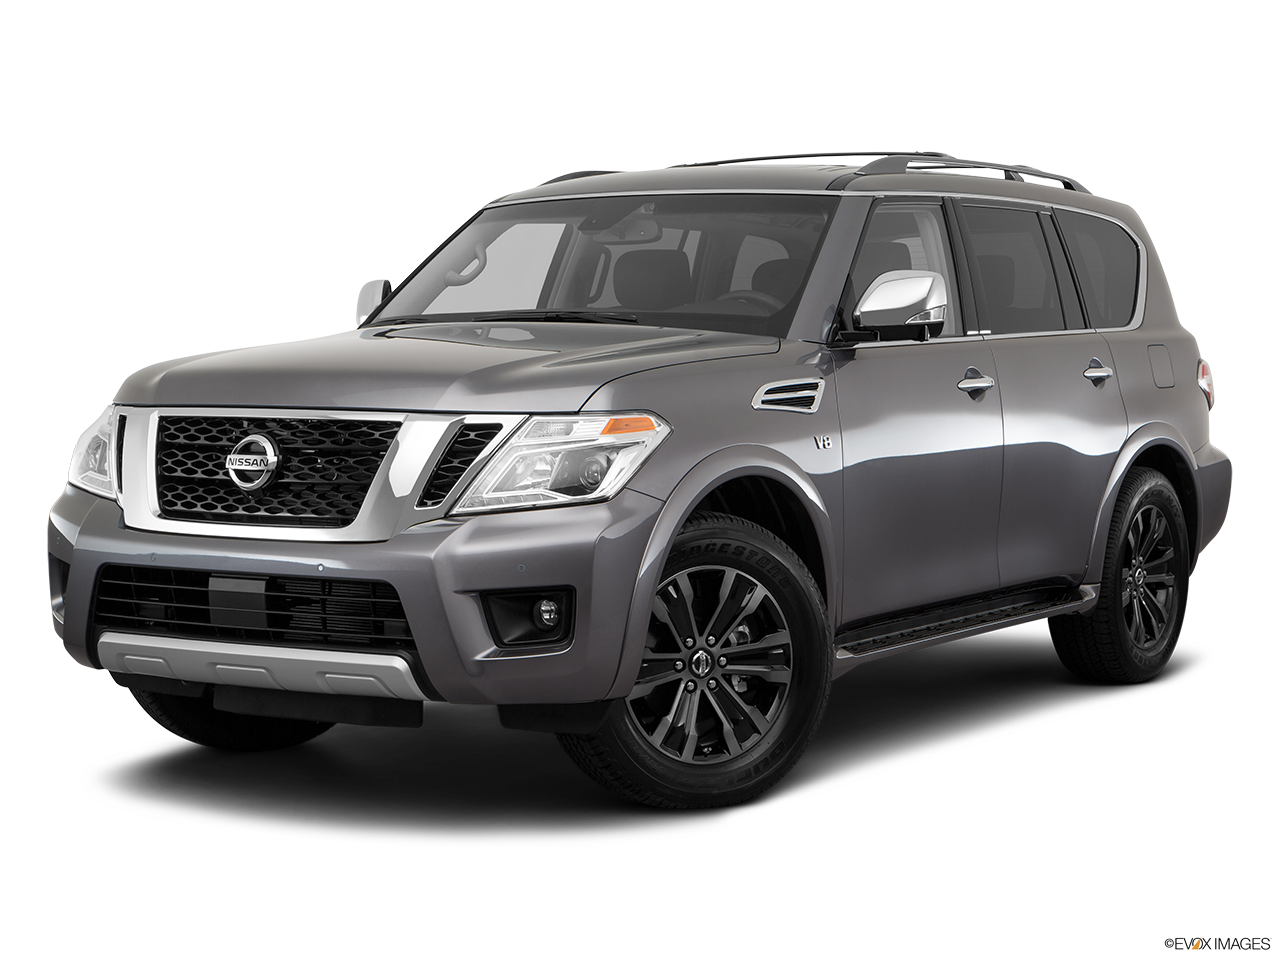 Test Drive A 2017 Nissan Armada® at Palm Springs Nissan